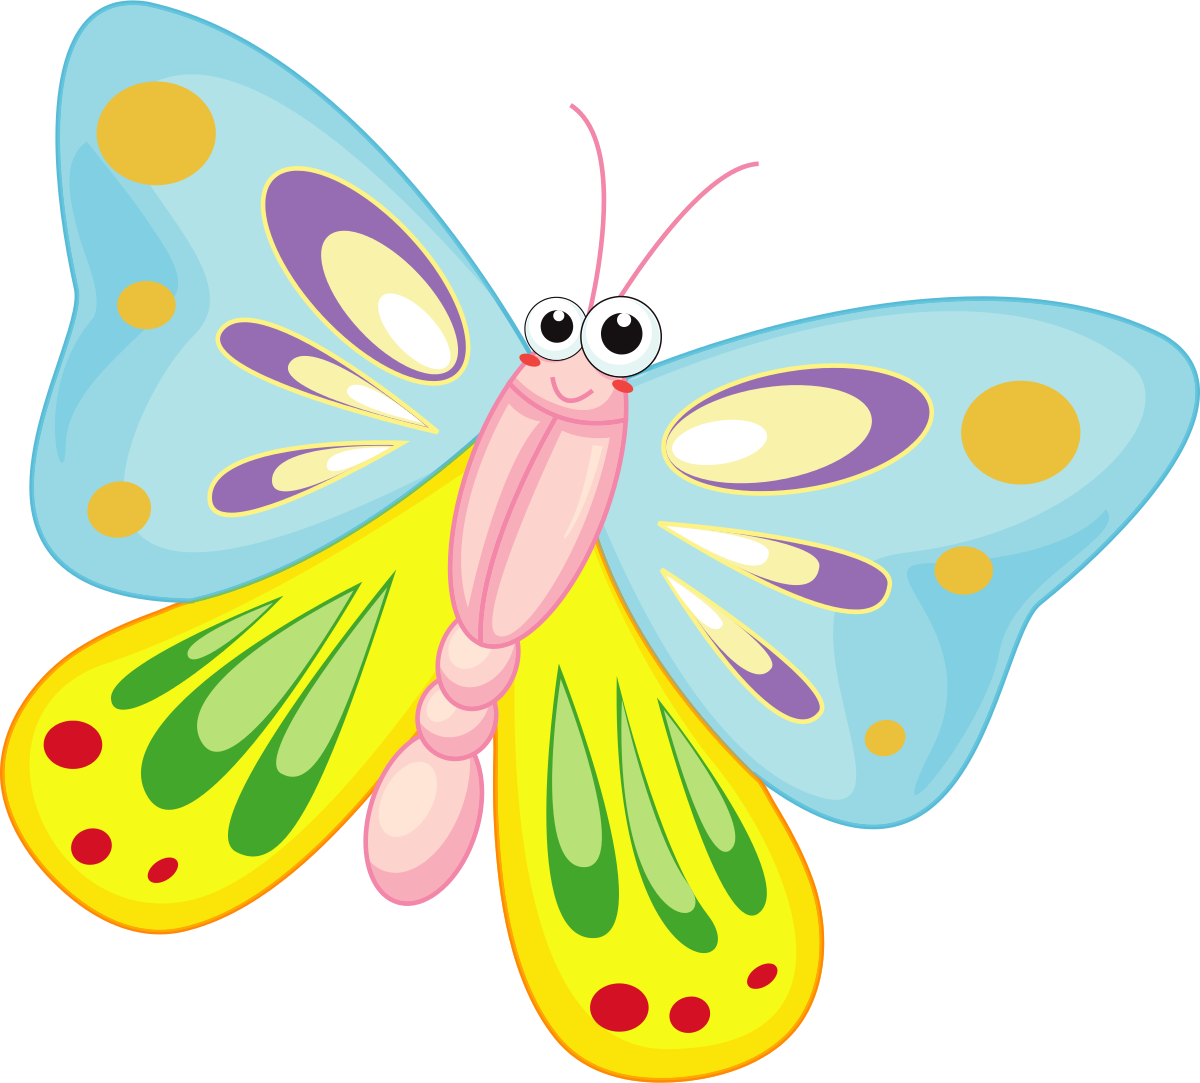 Butterfly pics clipart vector library library Free Butterfly Clipart | Free download best Free Butterfly Clipart ... vector library library